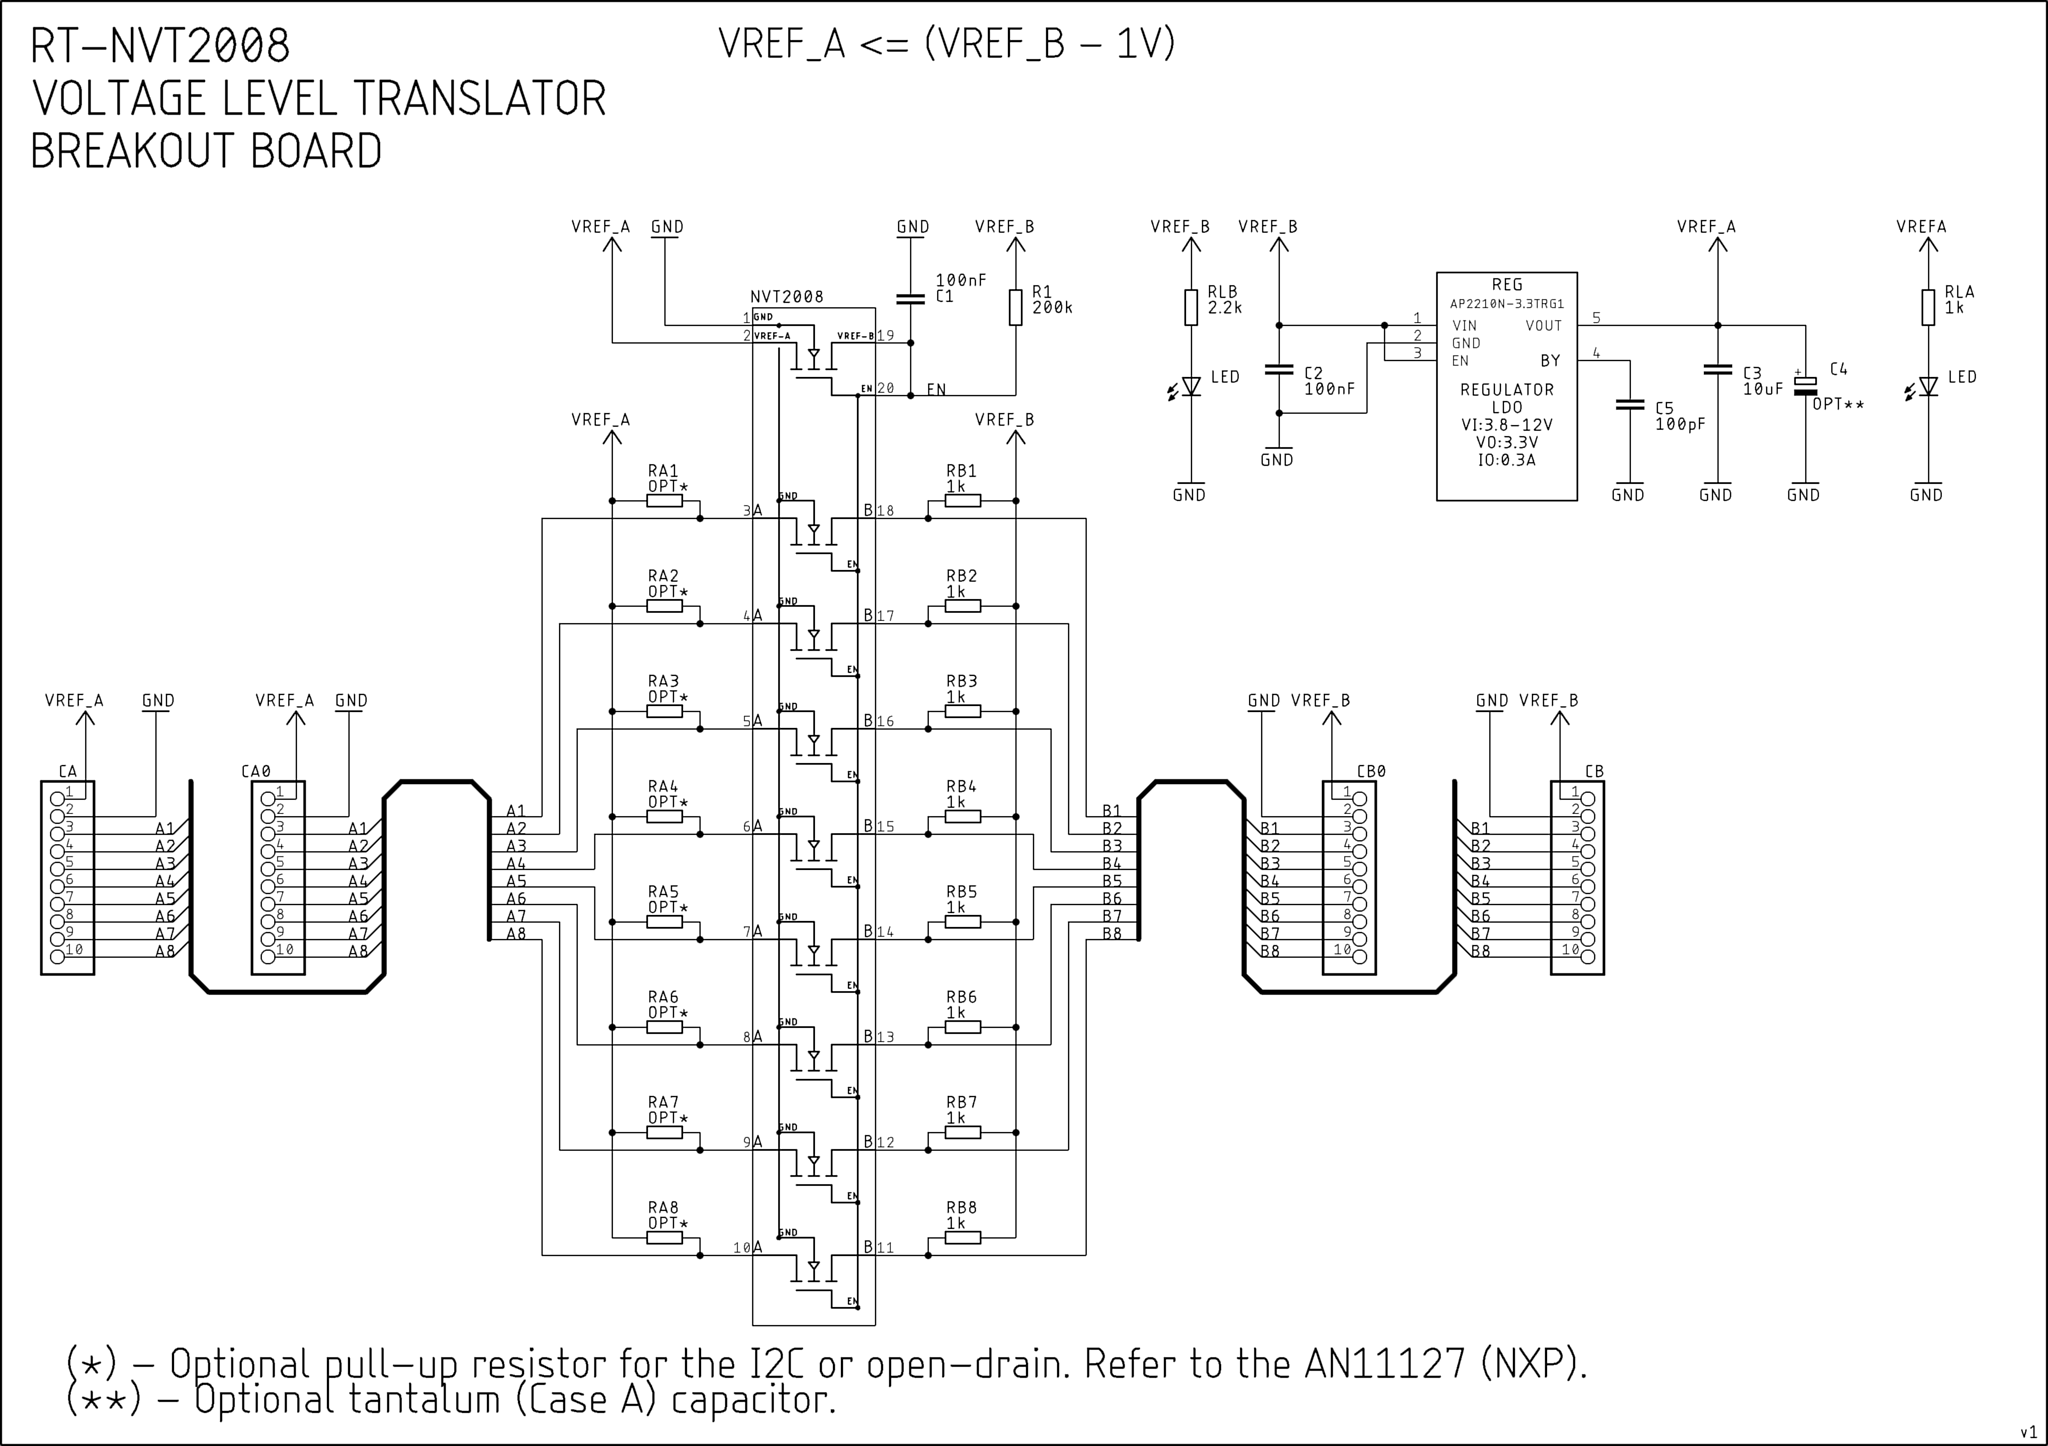 8 Logic Channels, Single Supply, Bidirectional Voltage